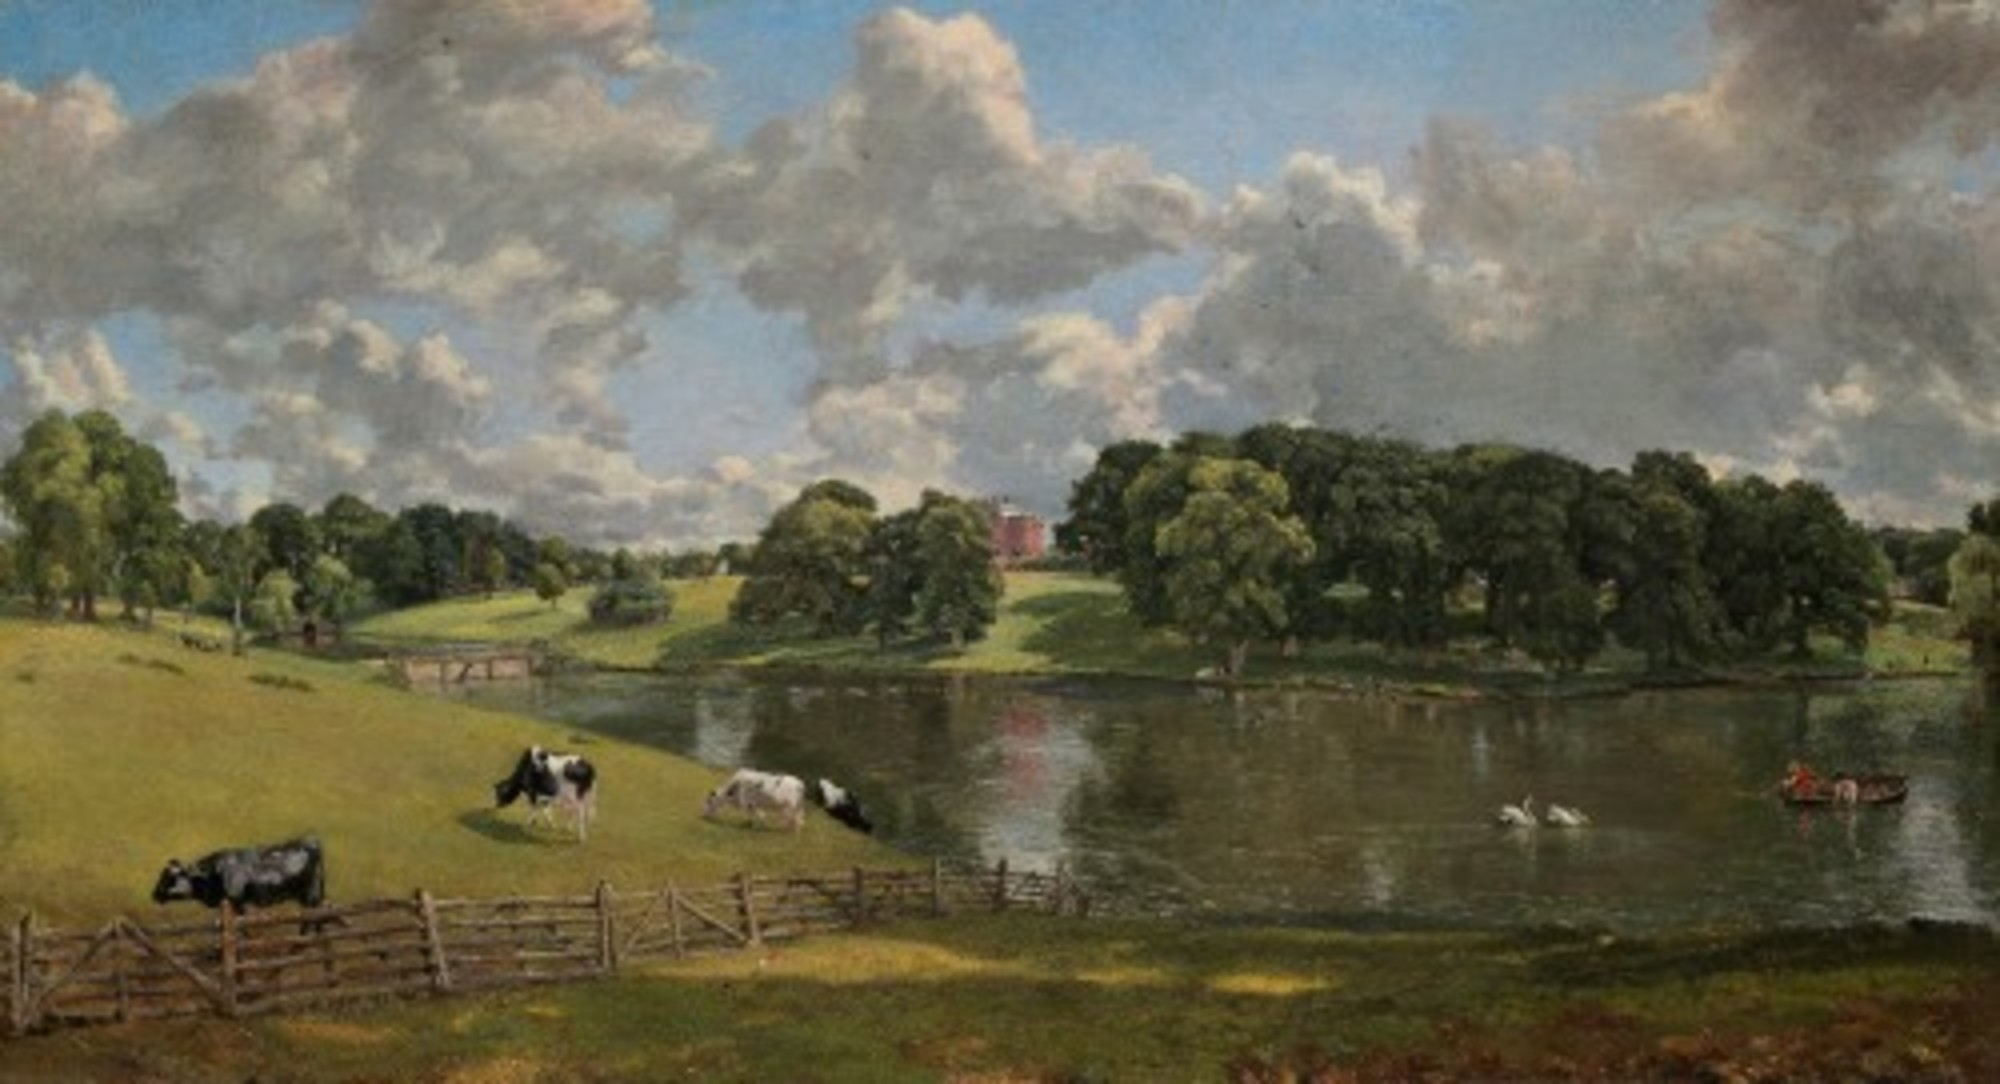 John_Constable_-_Wivenhoe_Park_Essex_-_Google_Art_Project.jpg